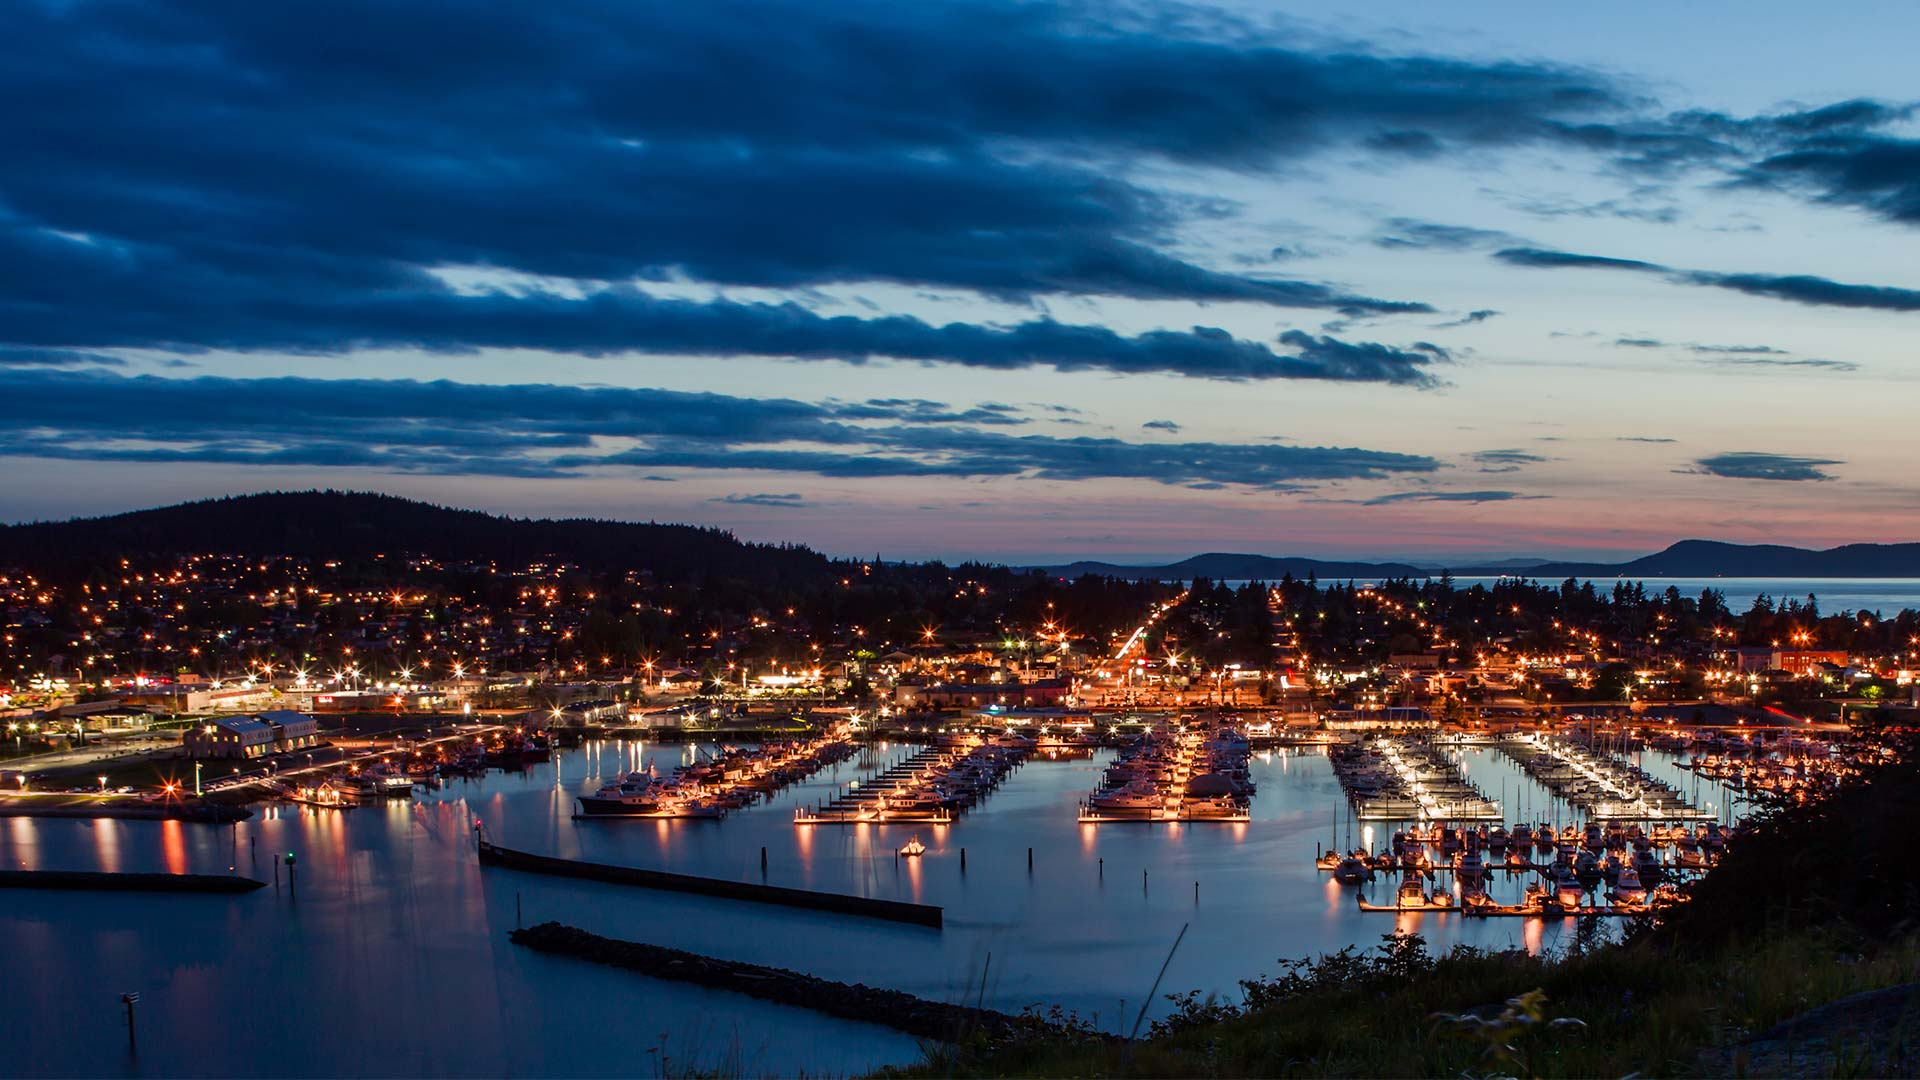 Panorama to illustrate dating in anacortes